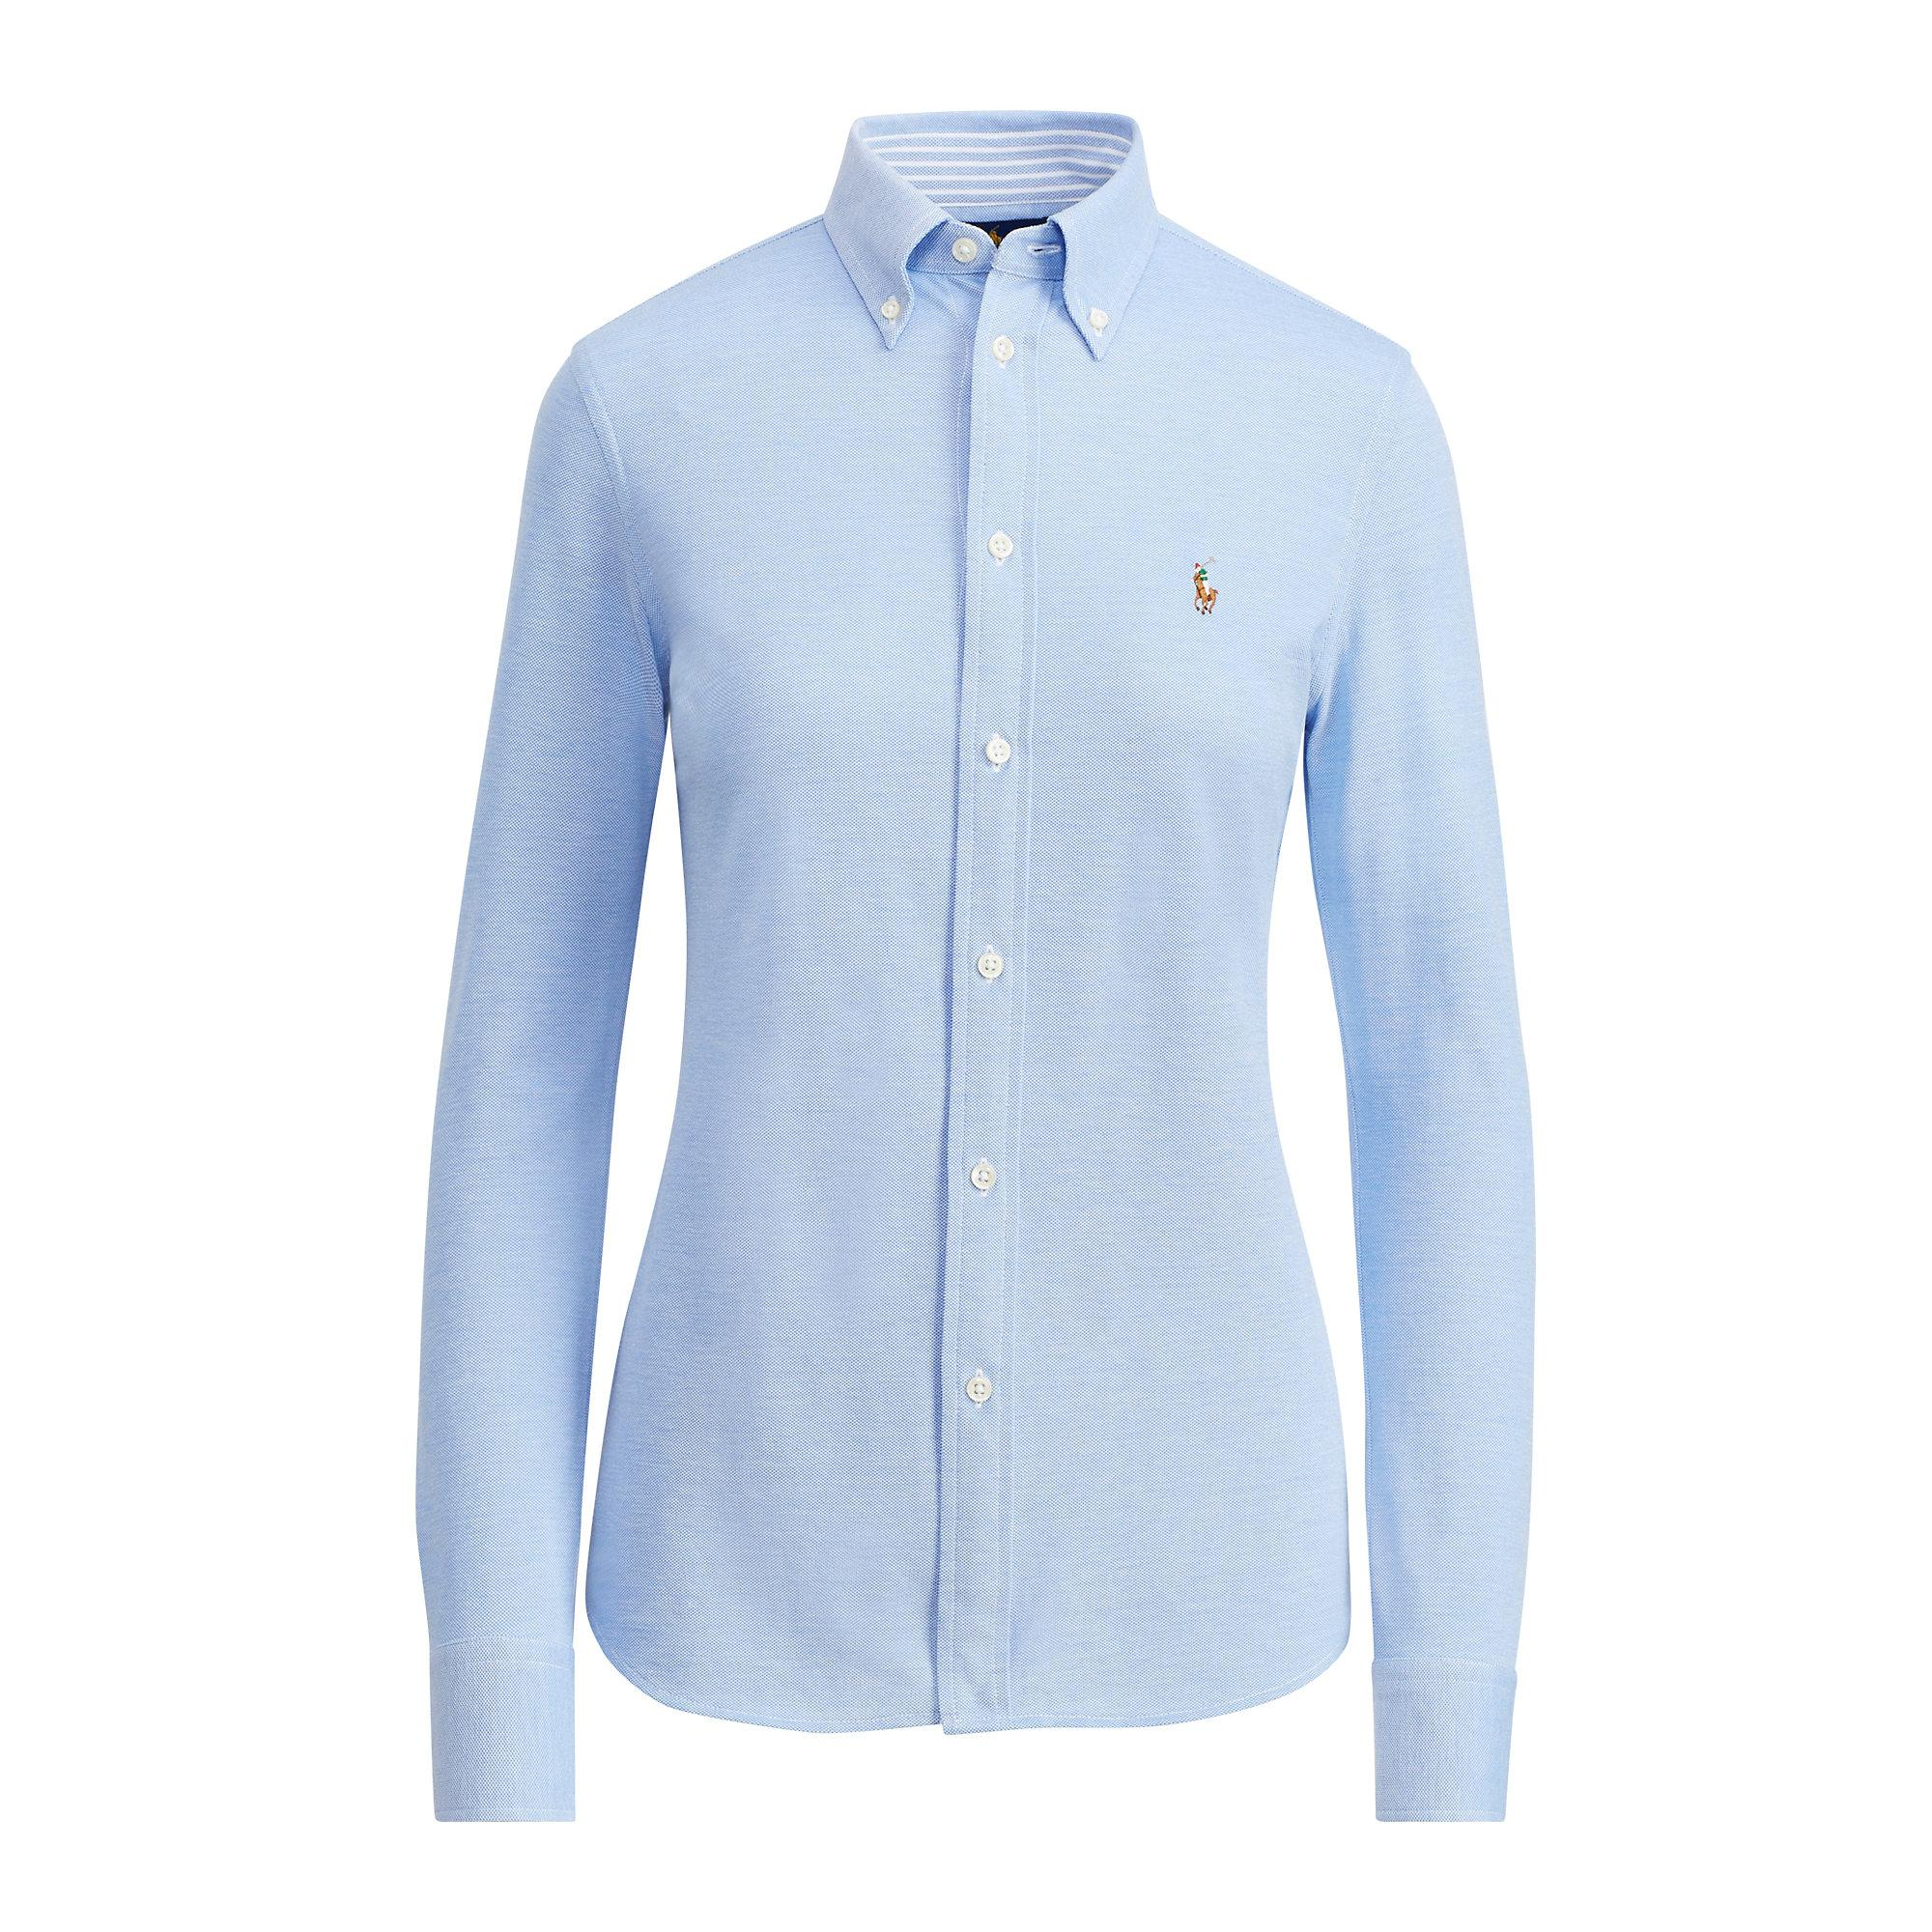 polo ralph lauren knit cotton oxford shirt in blue lyst